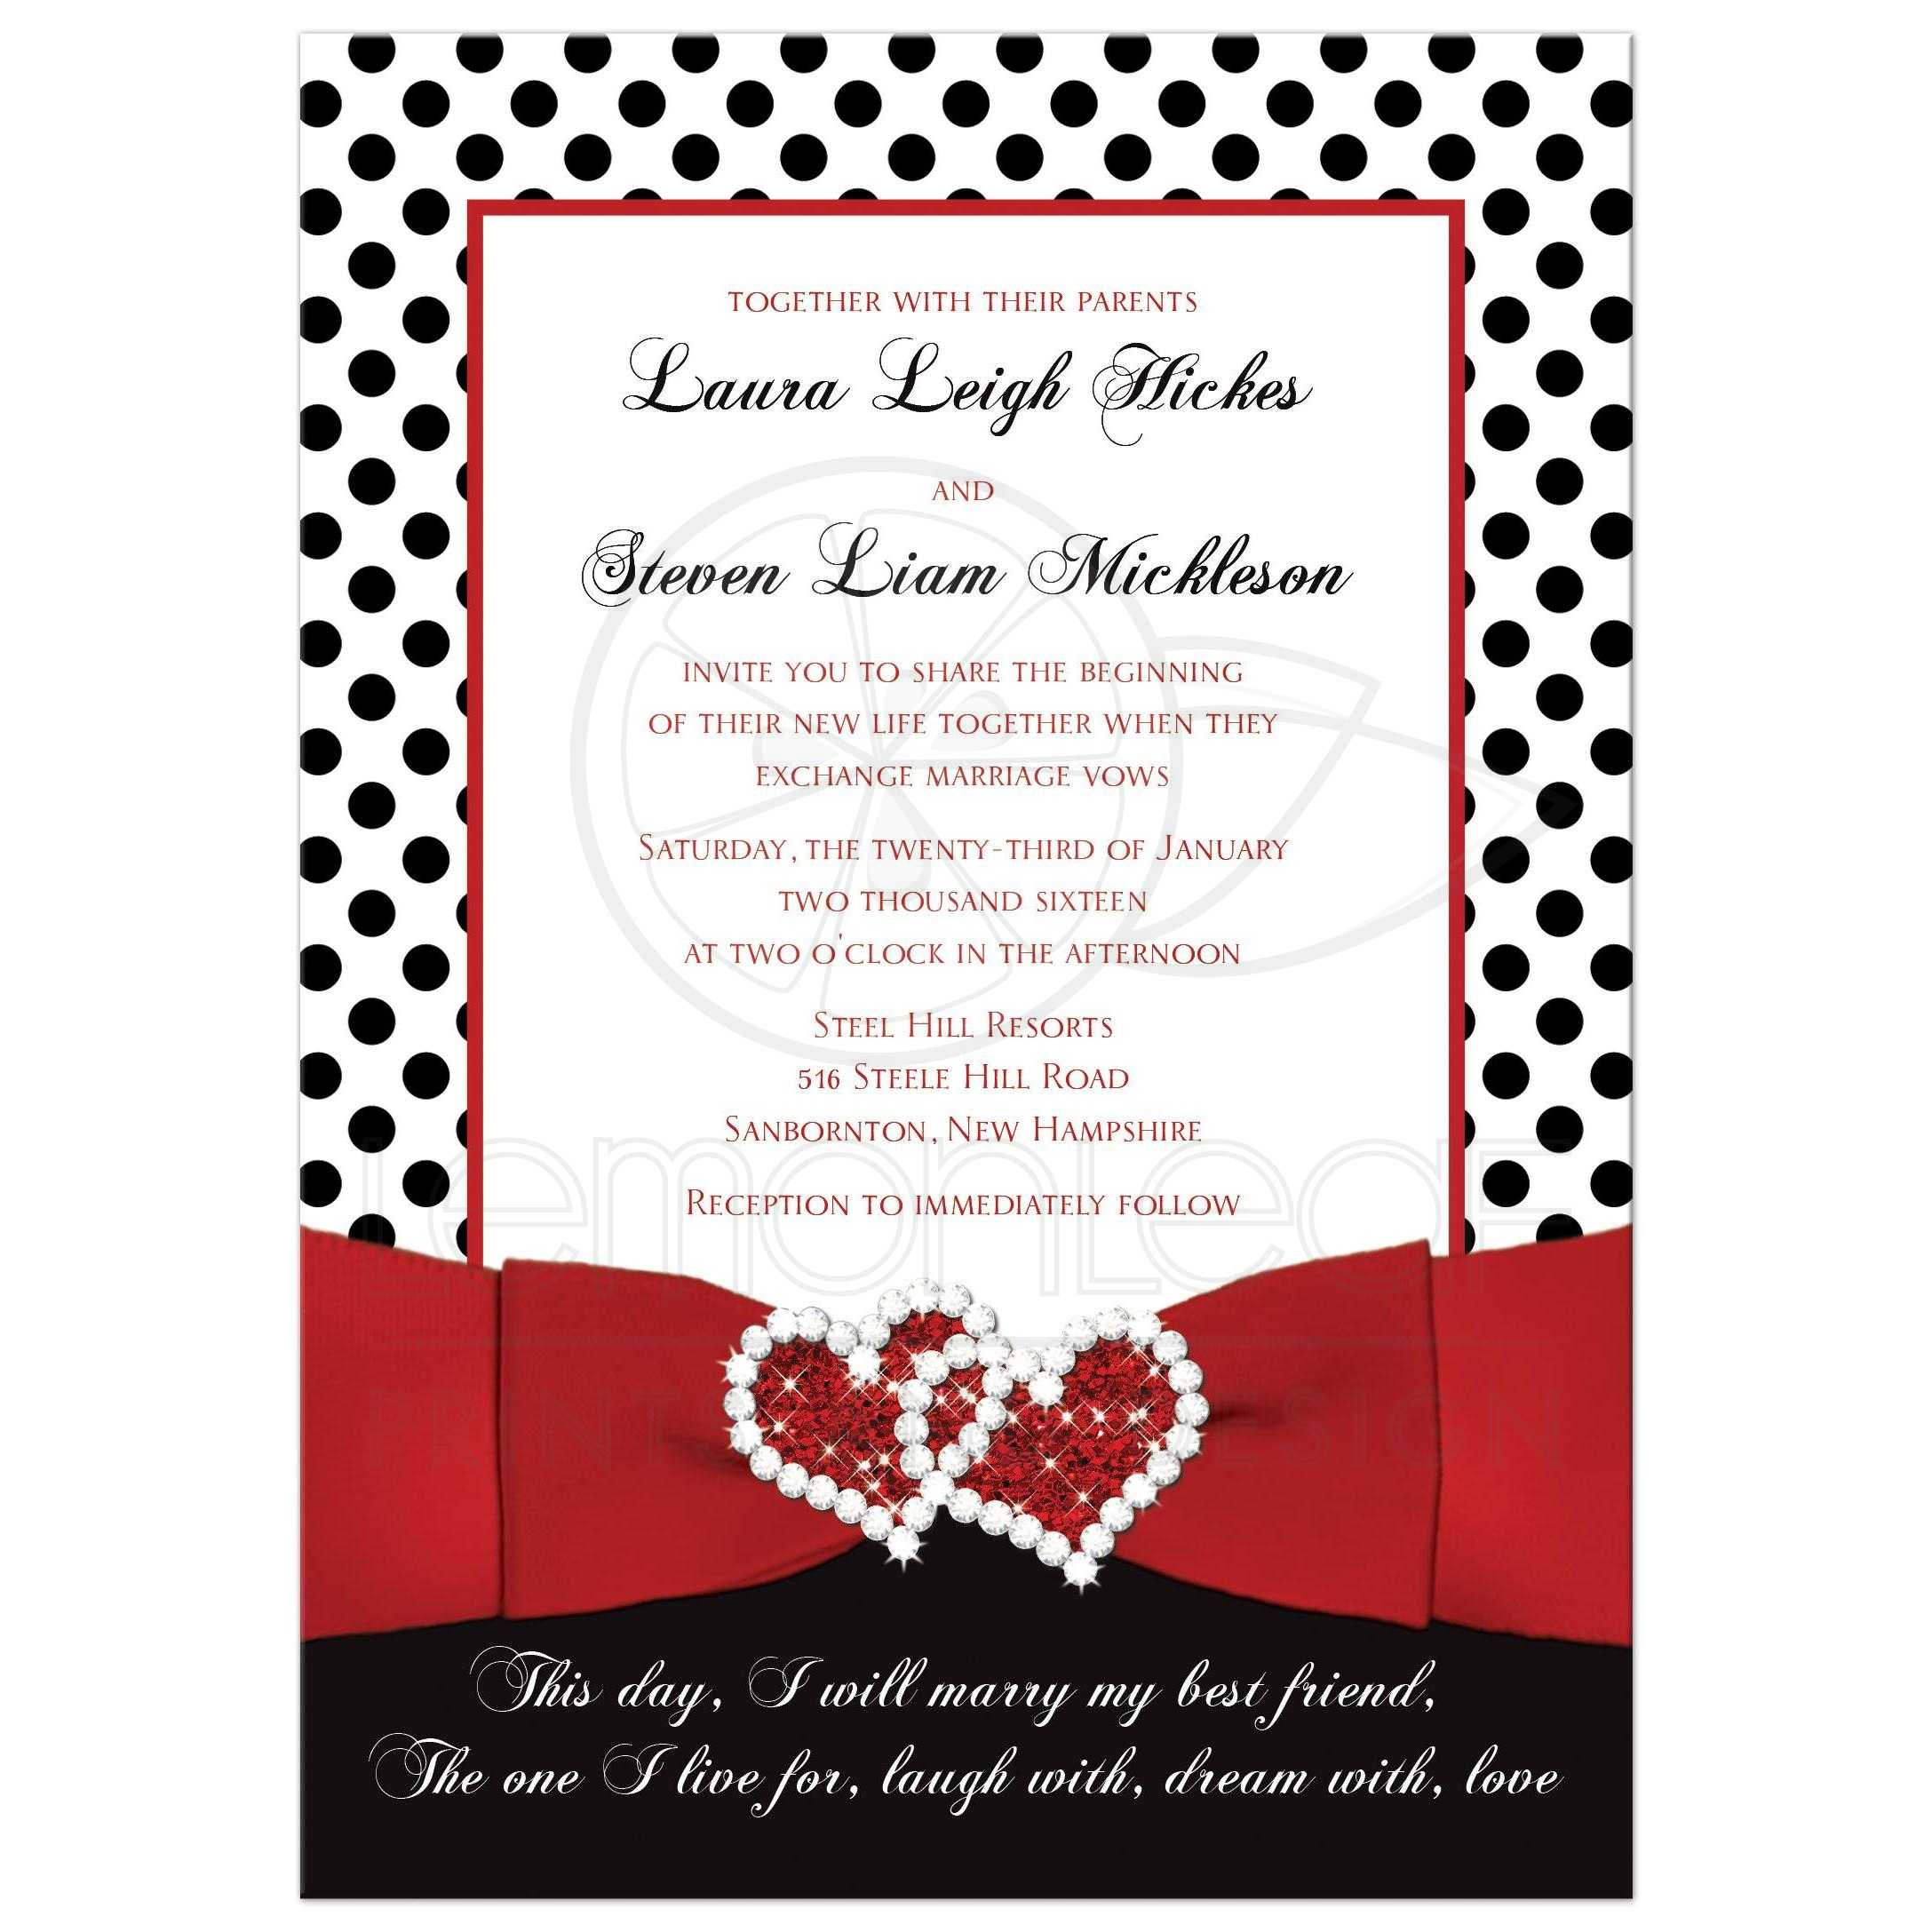 Wedding Invitation | Black, White Red | Polka Dots | Printed Ribbon